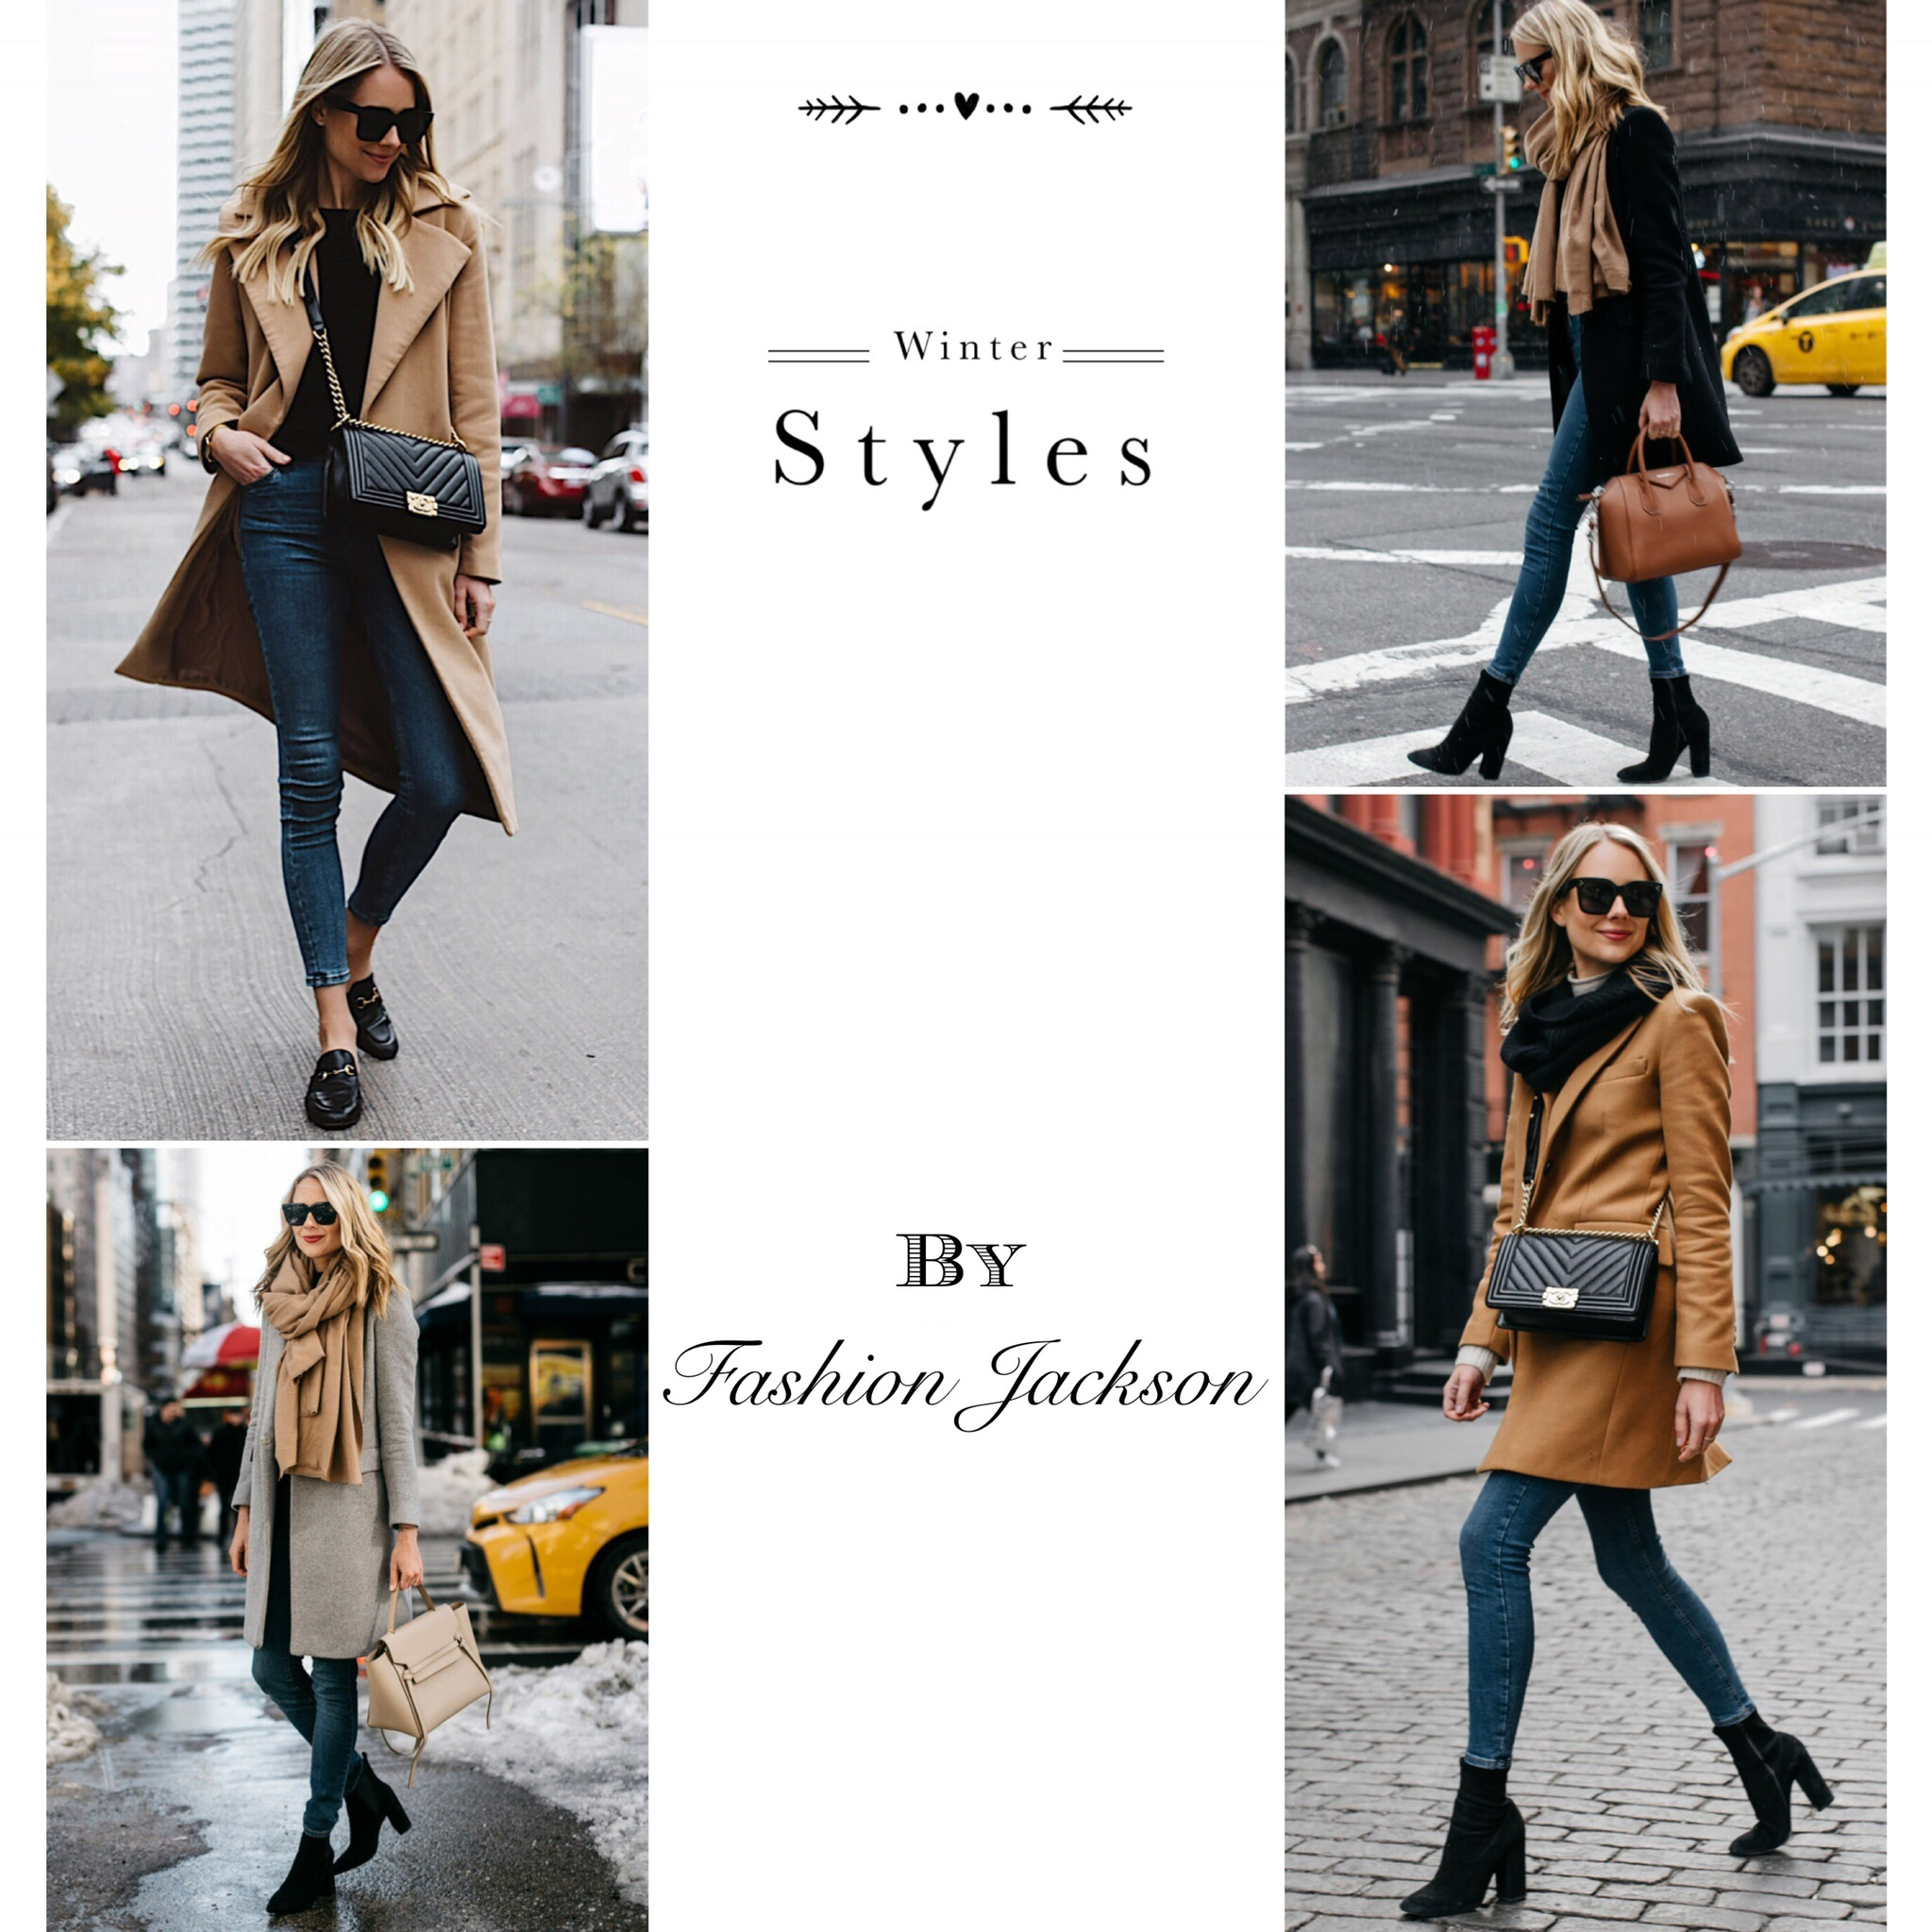 Winter styles by Fashion Jackson